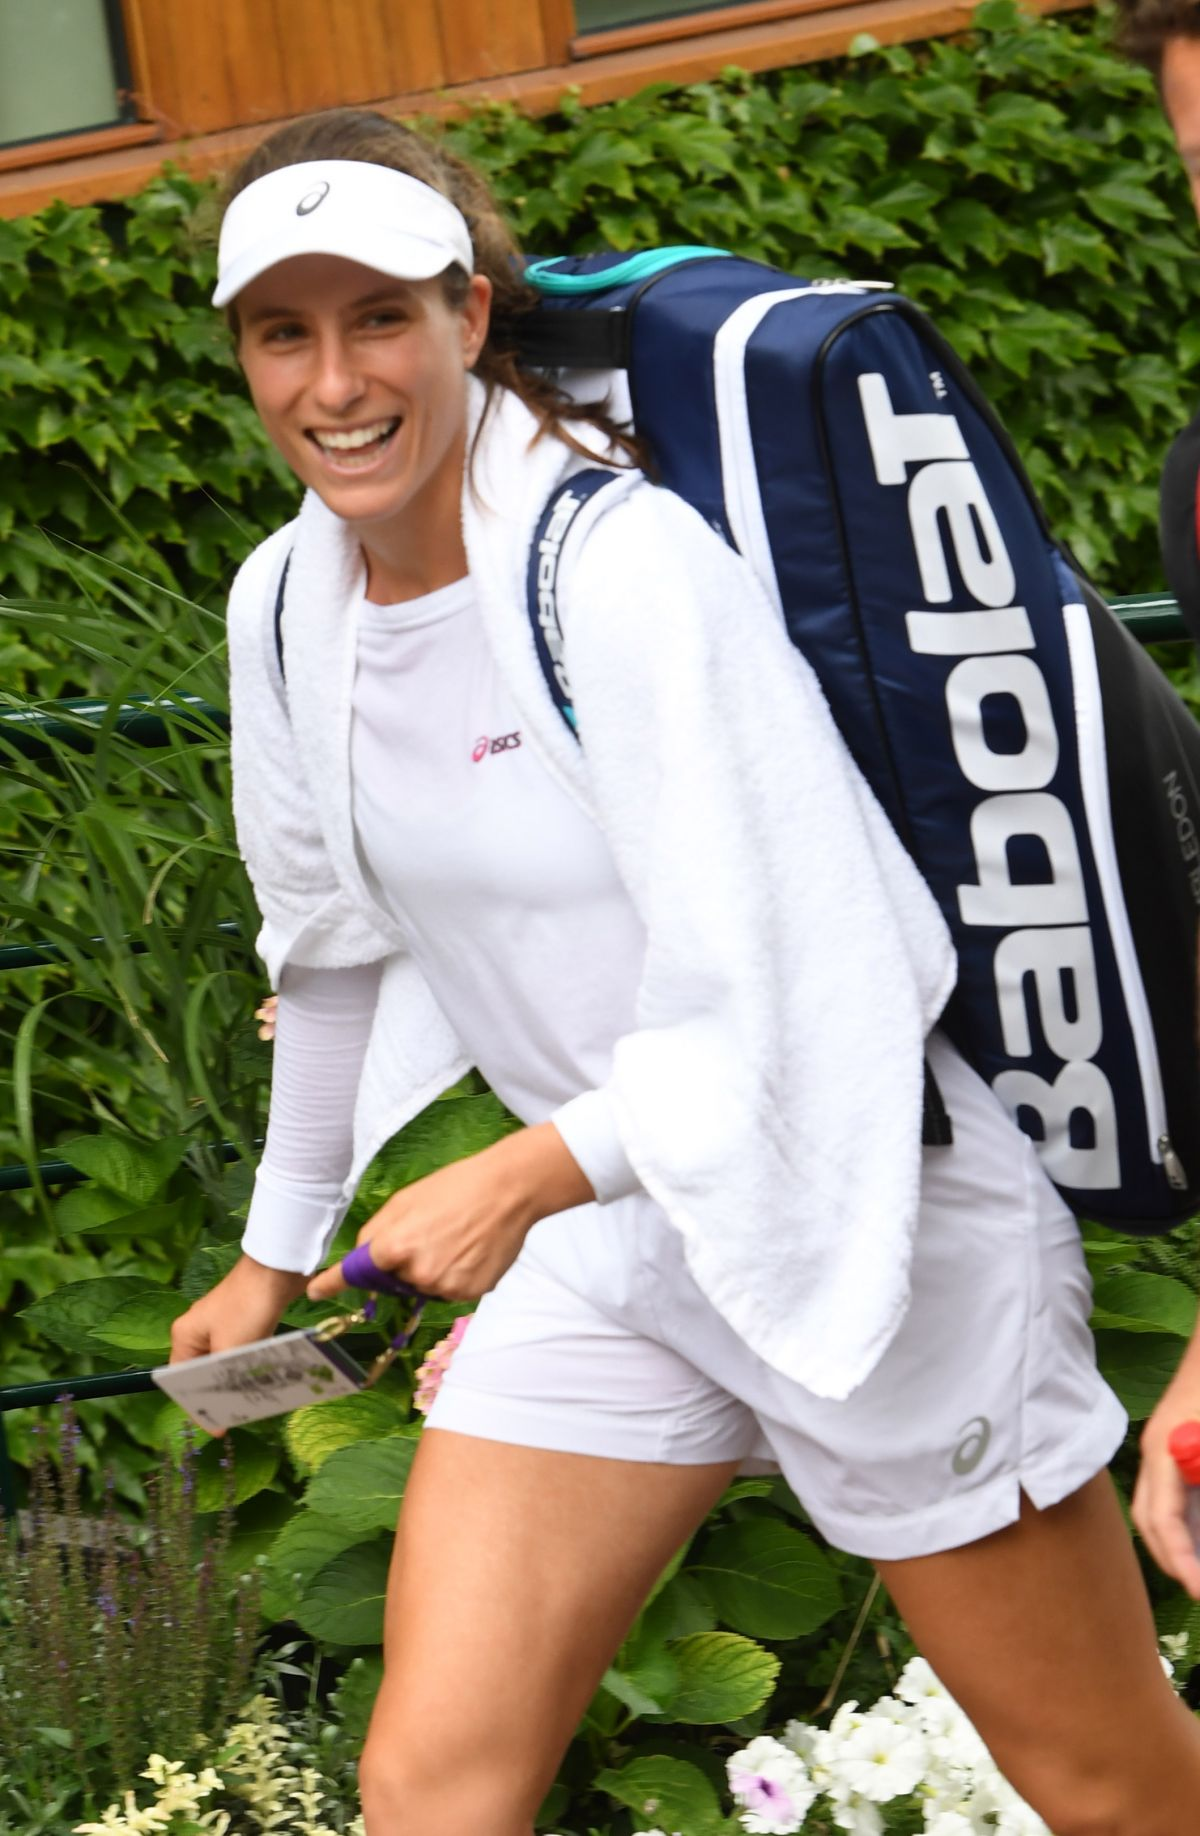 JOHANNA KONTA Arrives at Wimbledon Championships in London 07/11/2017